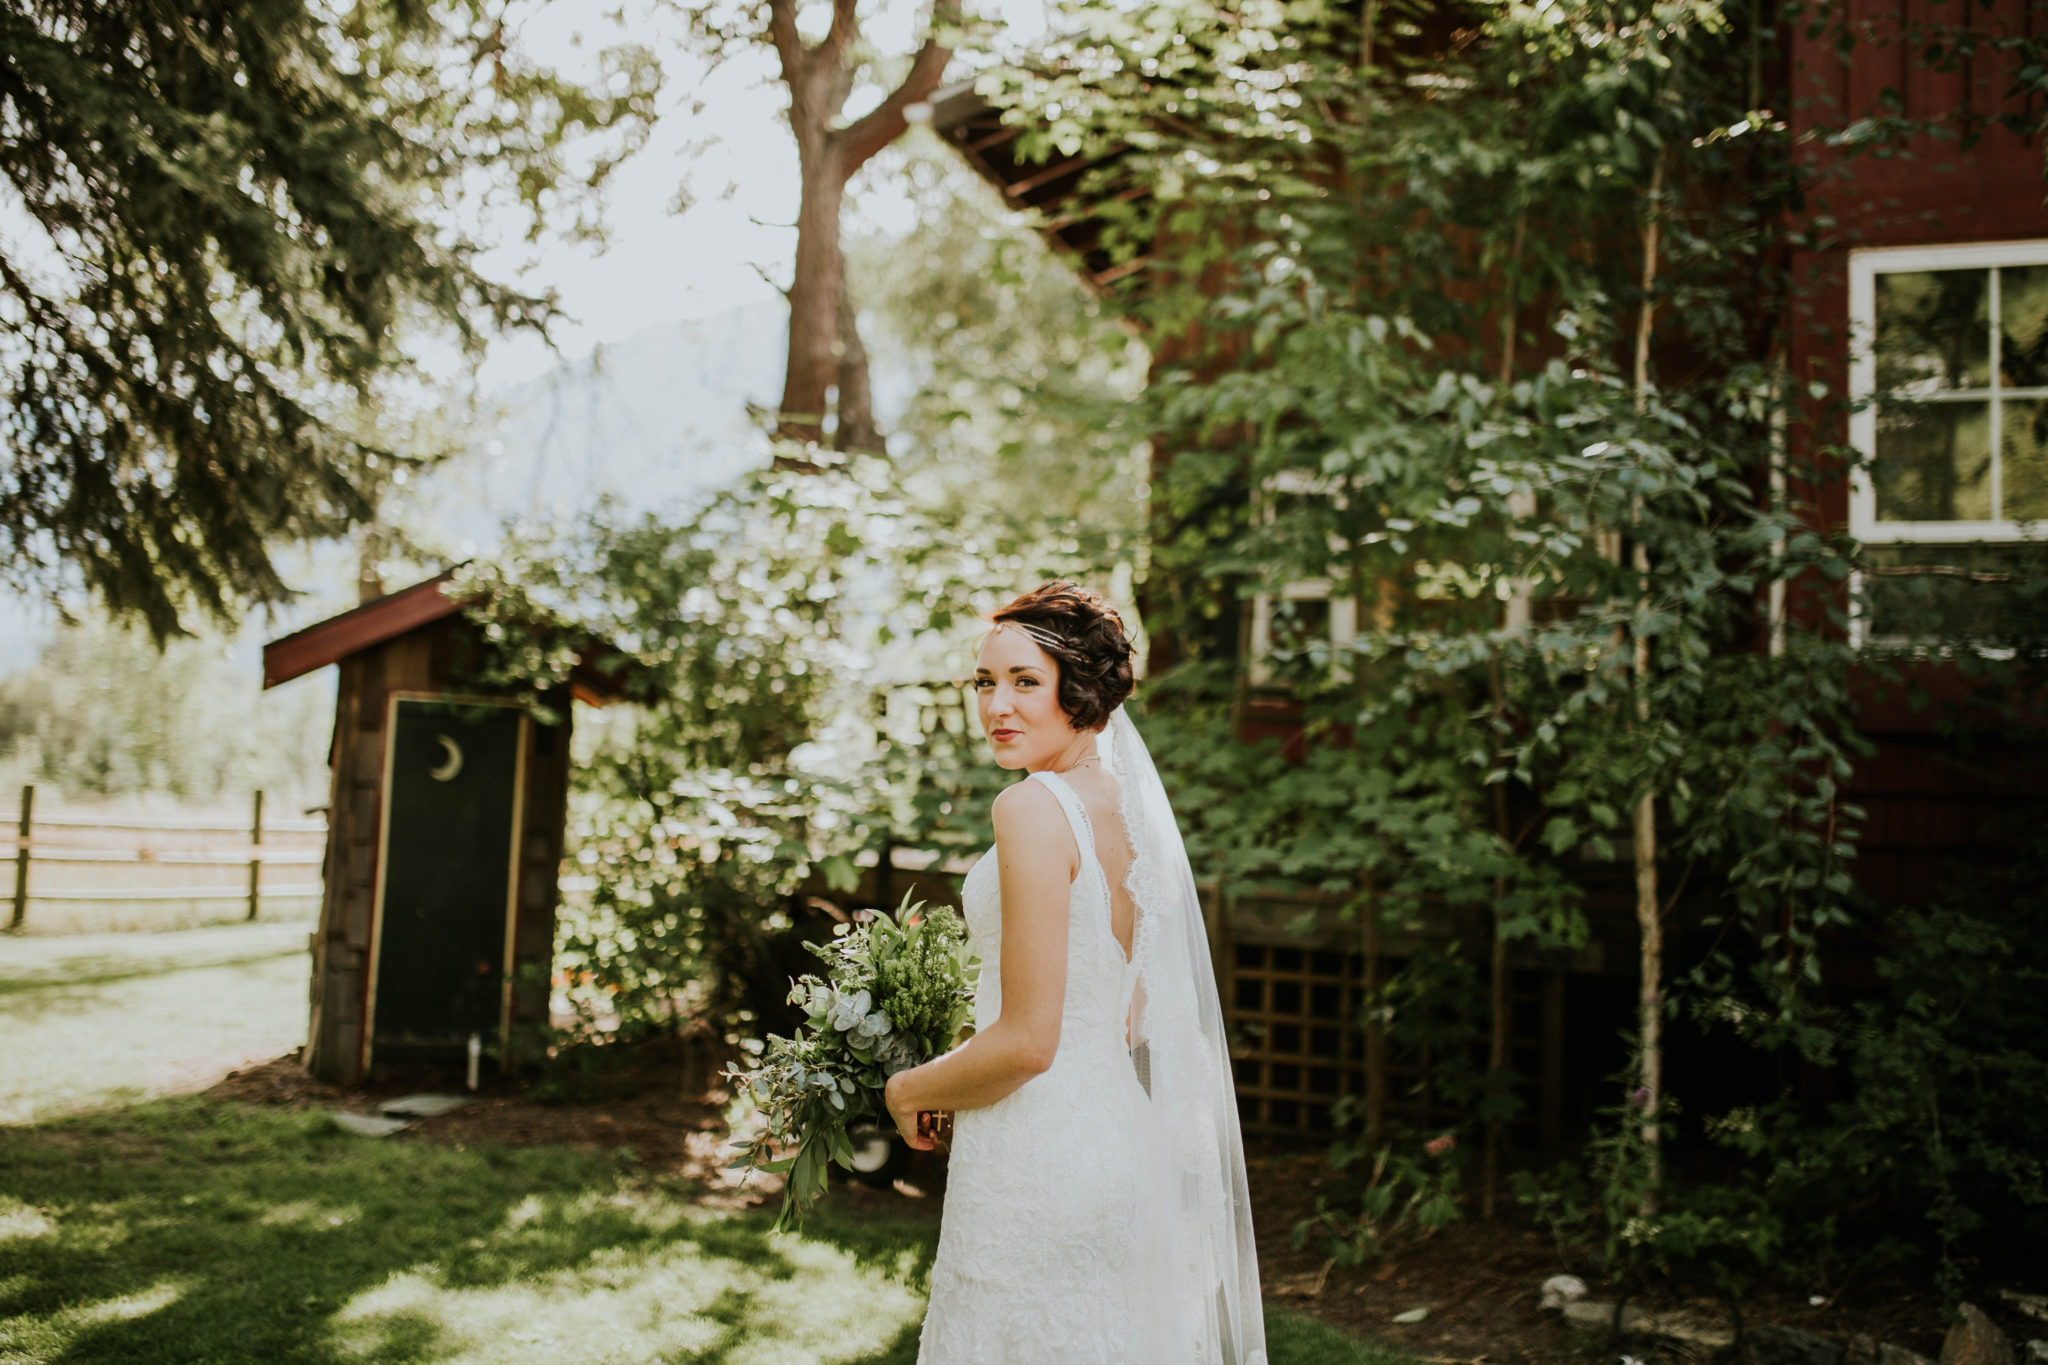 rachel-and-patrick-seattle-washington-wedding-photographer-208